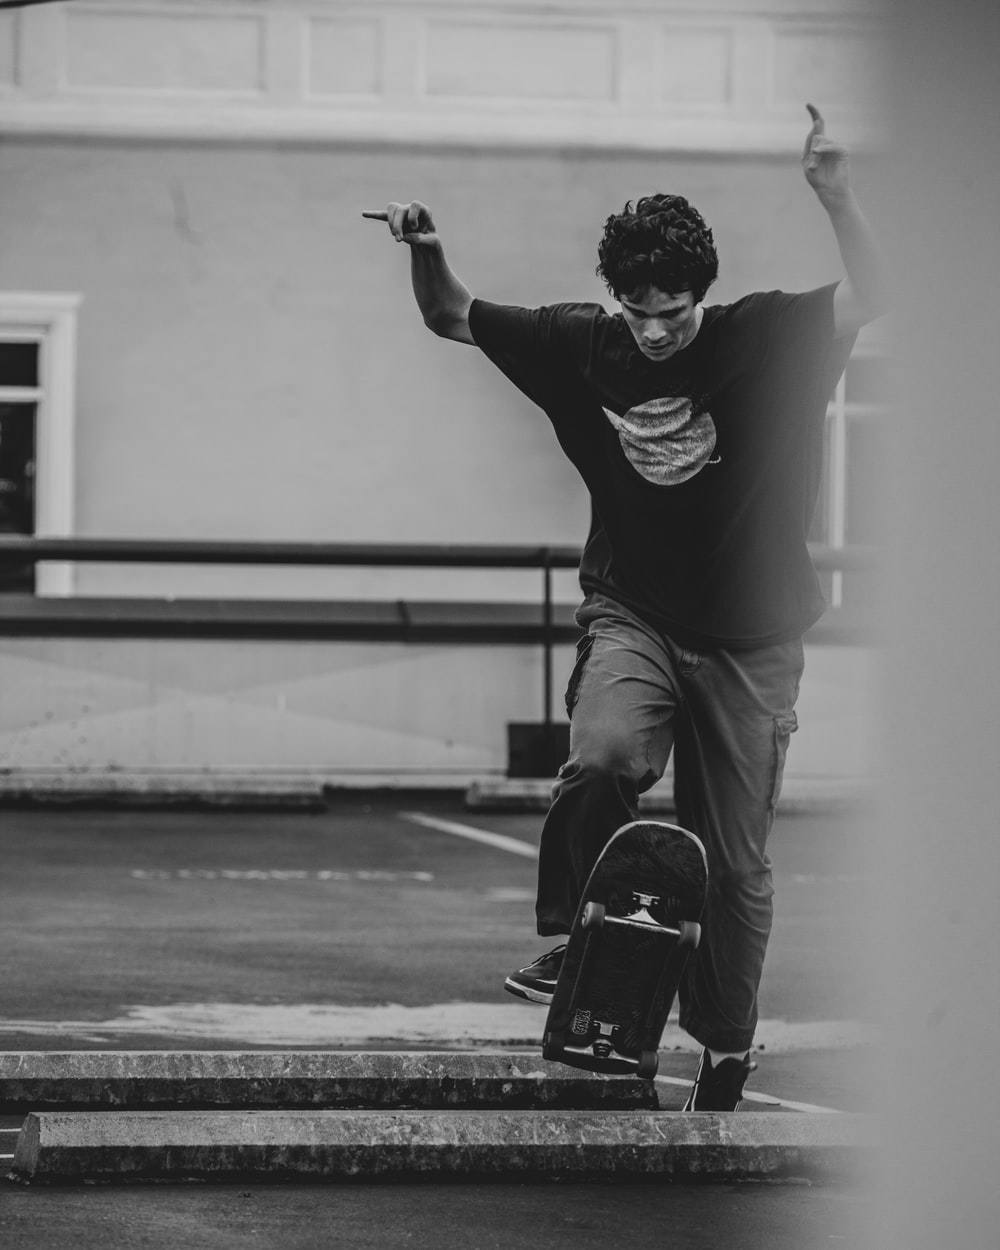 man in black long sleeve shirt and pants sitting on skateboard in grayscale photography